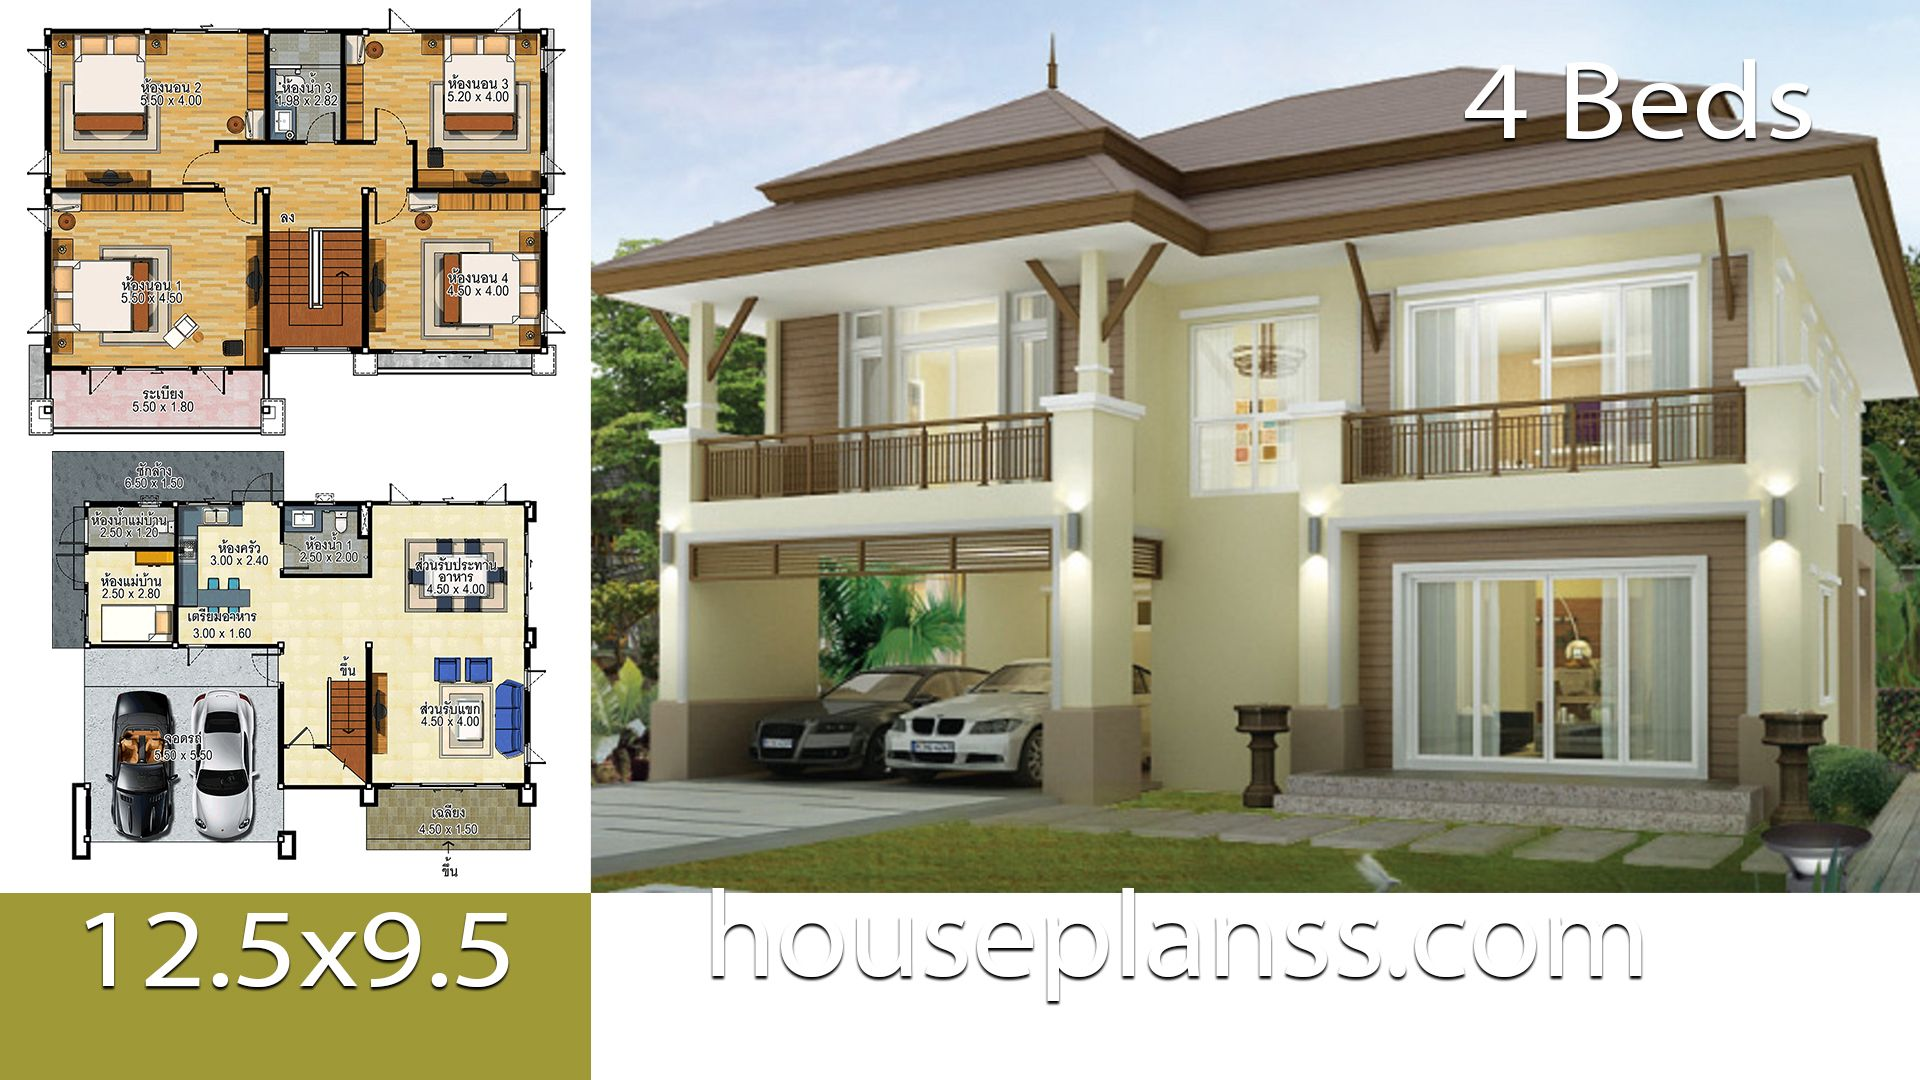 House Design Idea 12 5x9 5 With 4 Bedrooms House Plans 3d House Plan Gallery House Design House